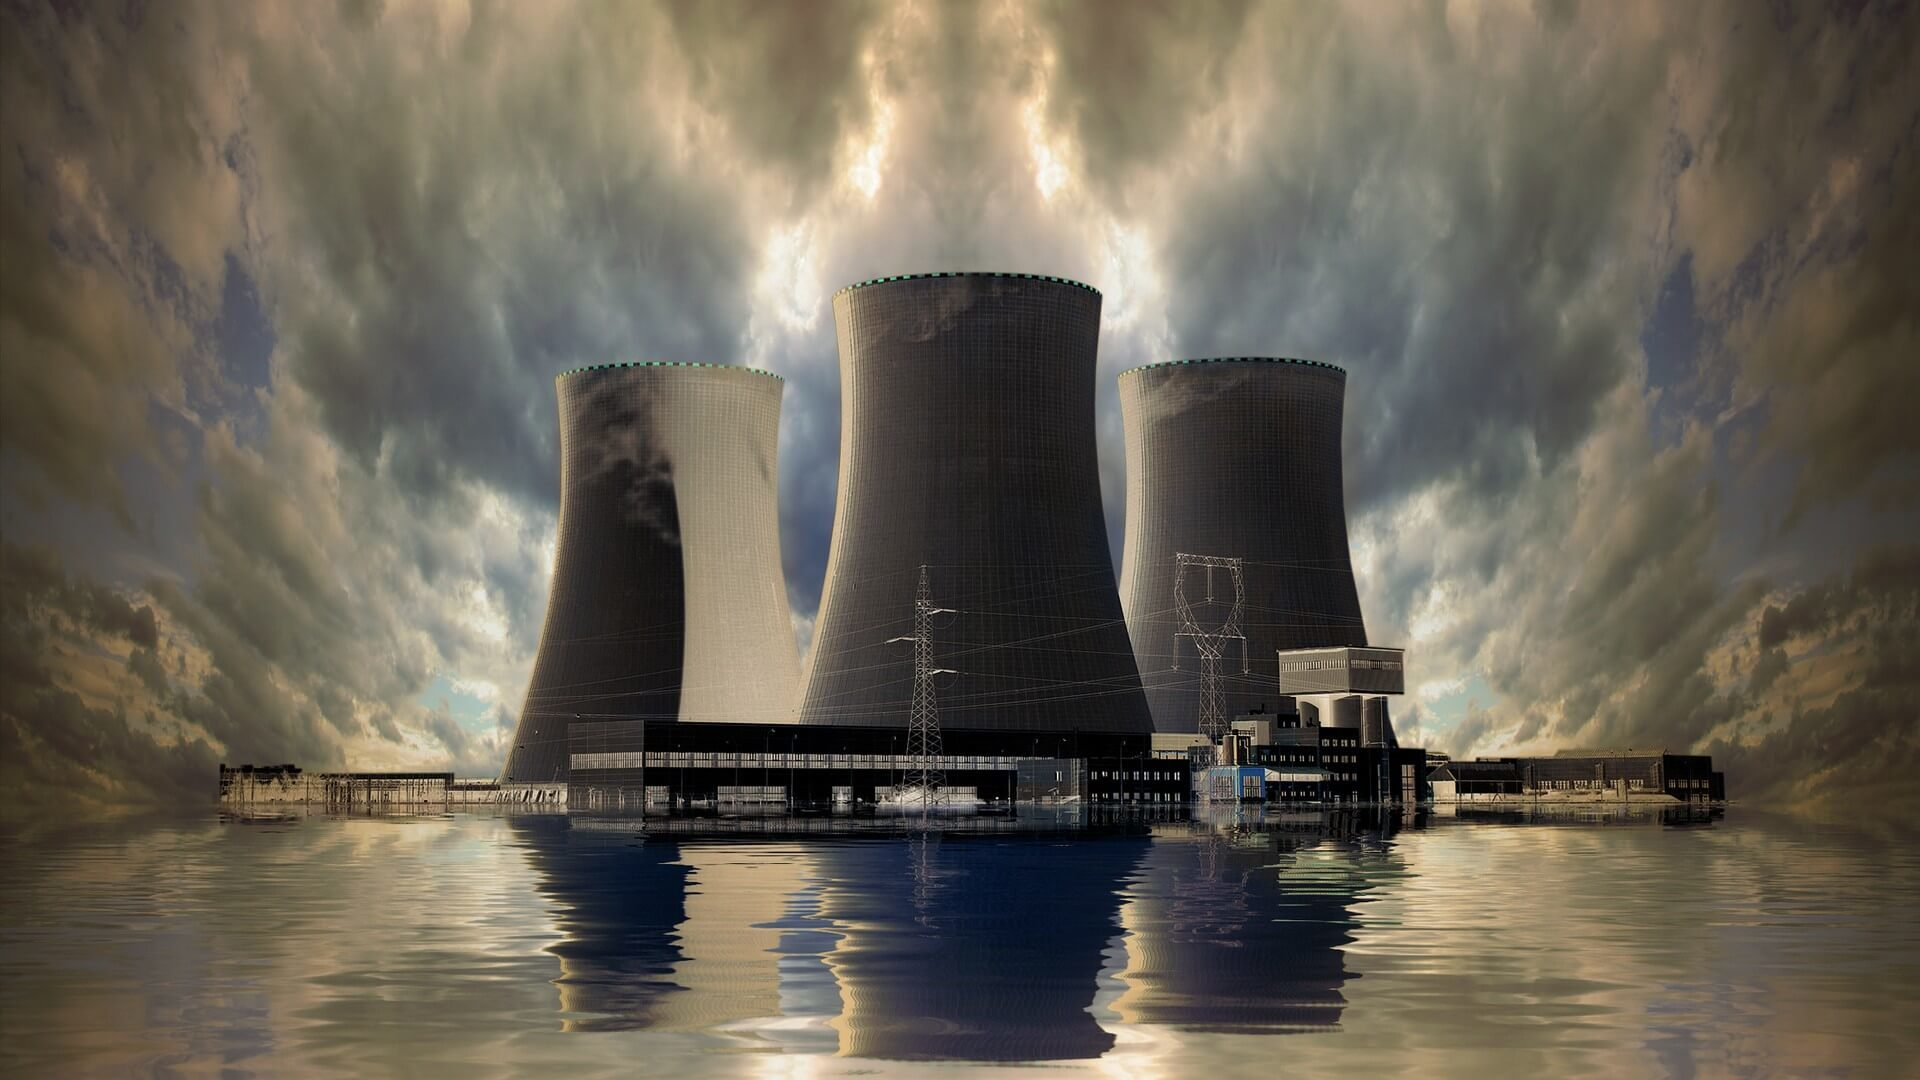 Nuclear power plant on the coast. Ecology disaster concept.